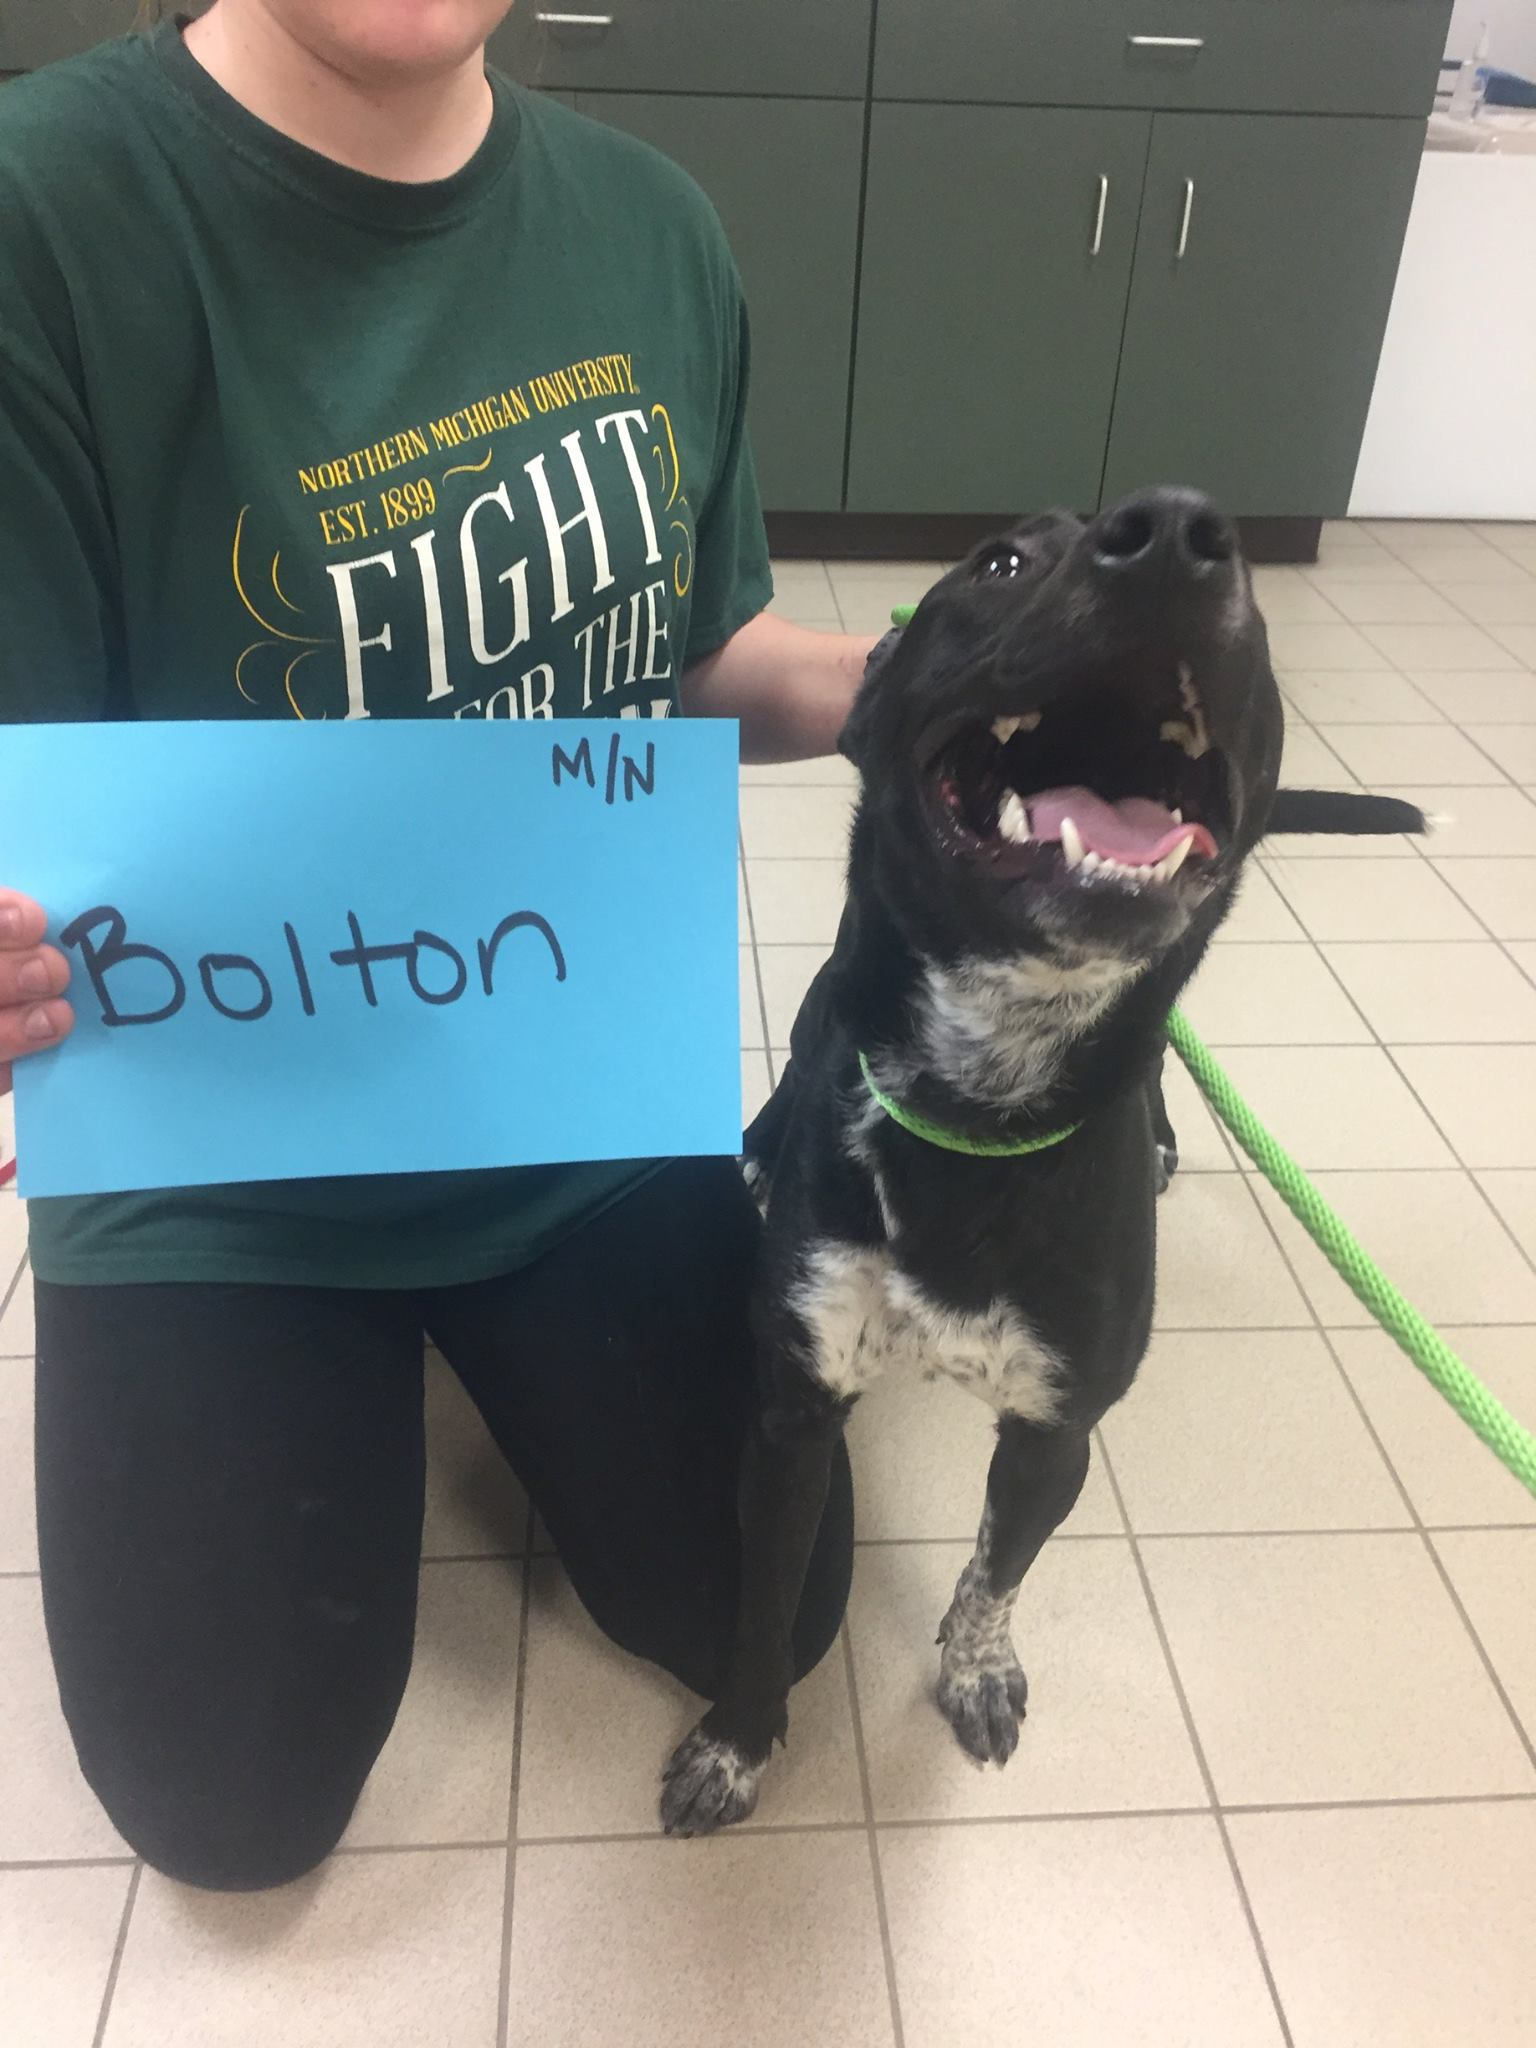 Bolton is available to meet you at the Cherryland Humane Society.